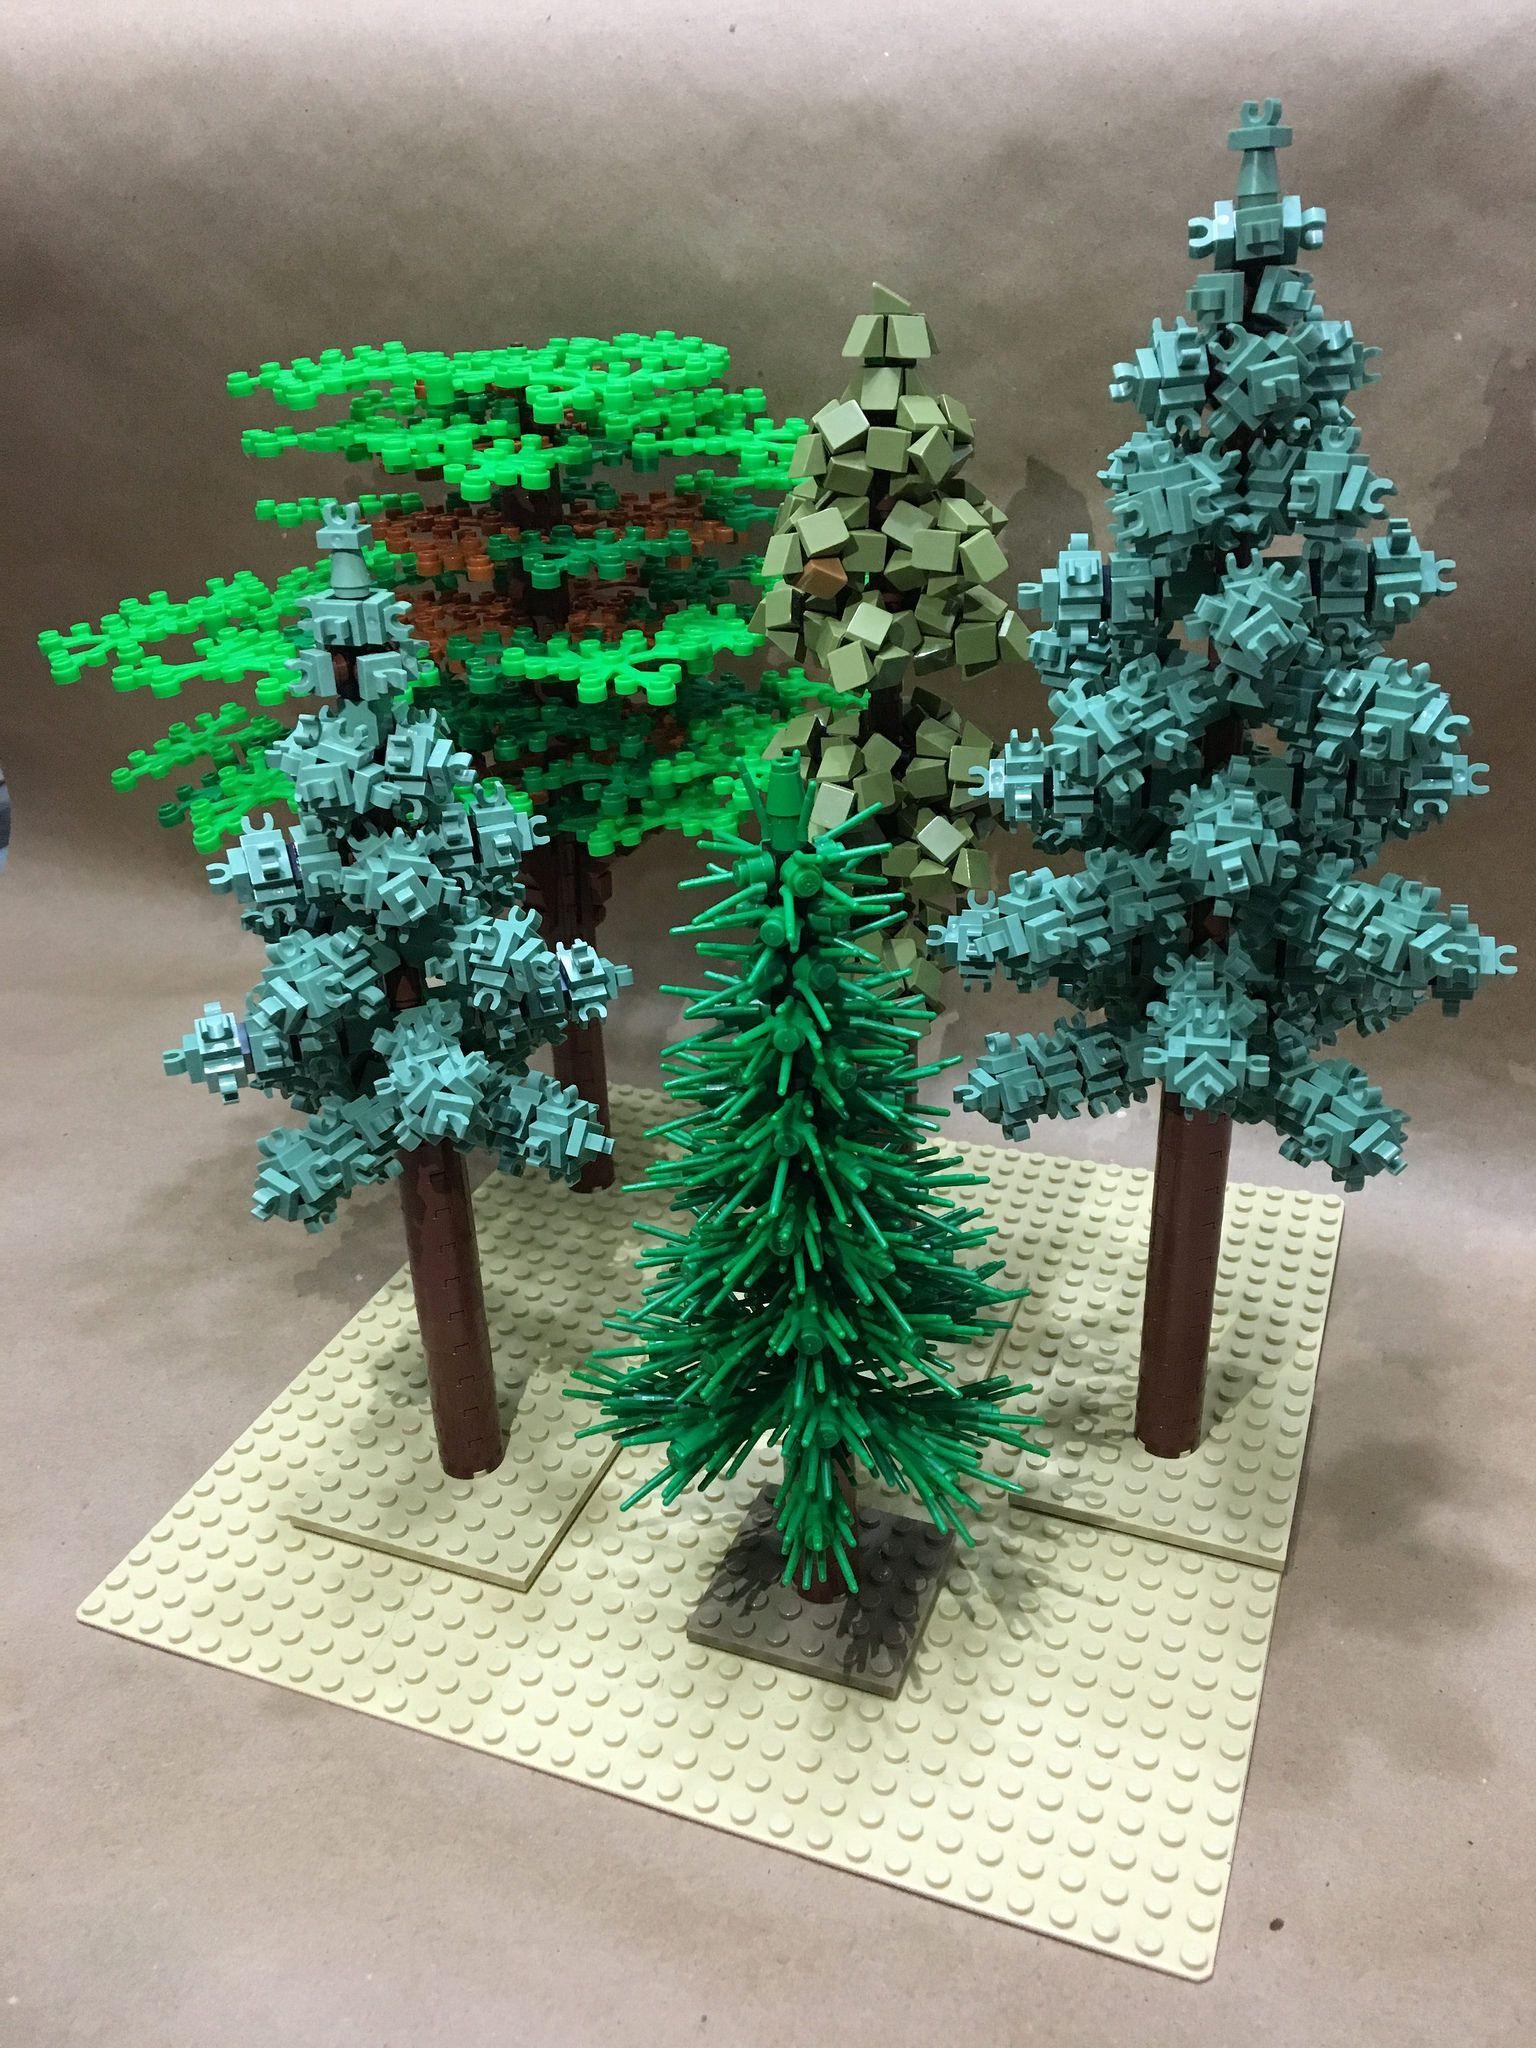 Playing Around With Trees Lego Design Lego Tree Lego Creations